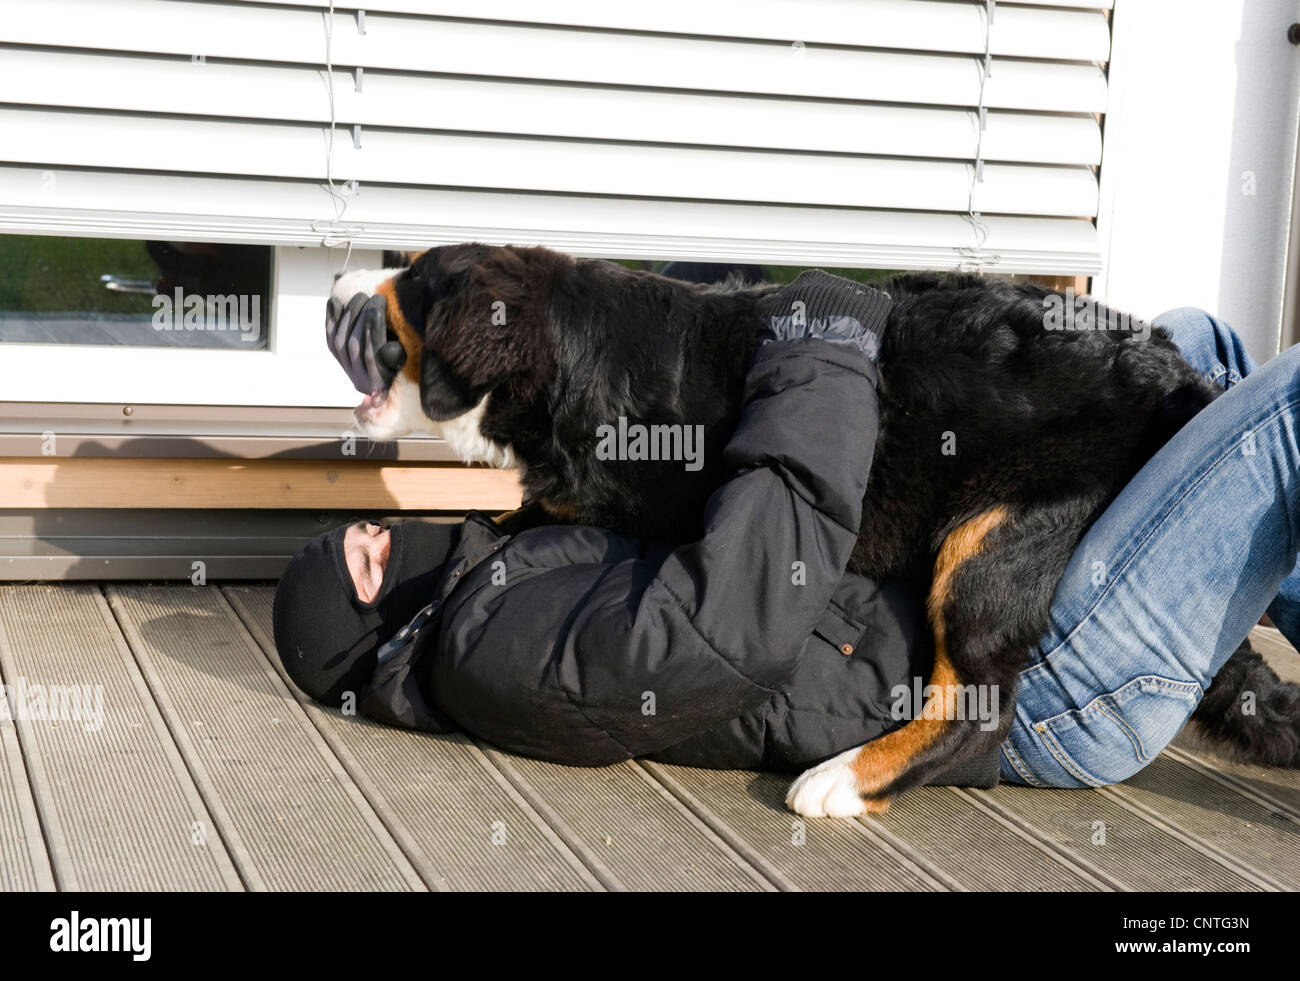 watchdog overwhelms a housebreaker - Stock Image